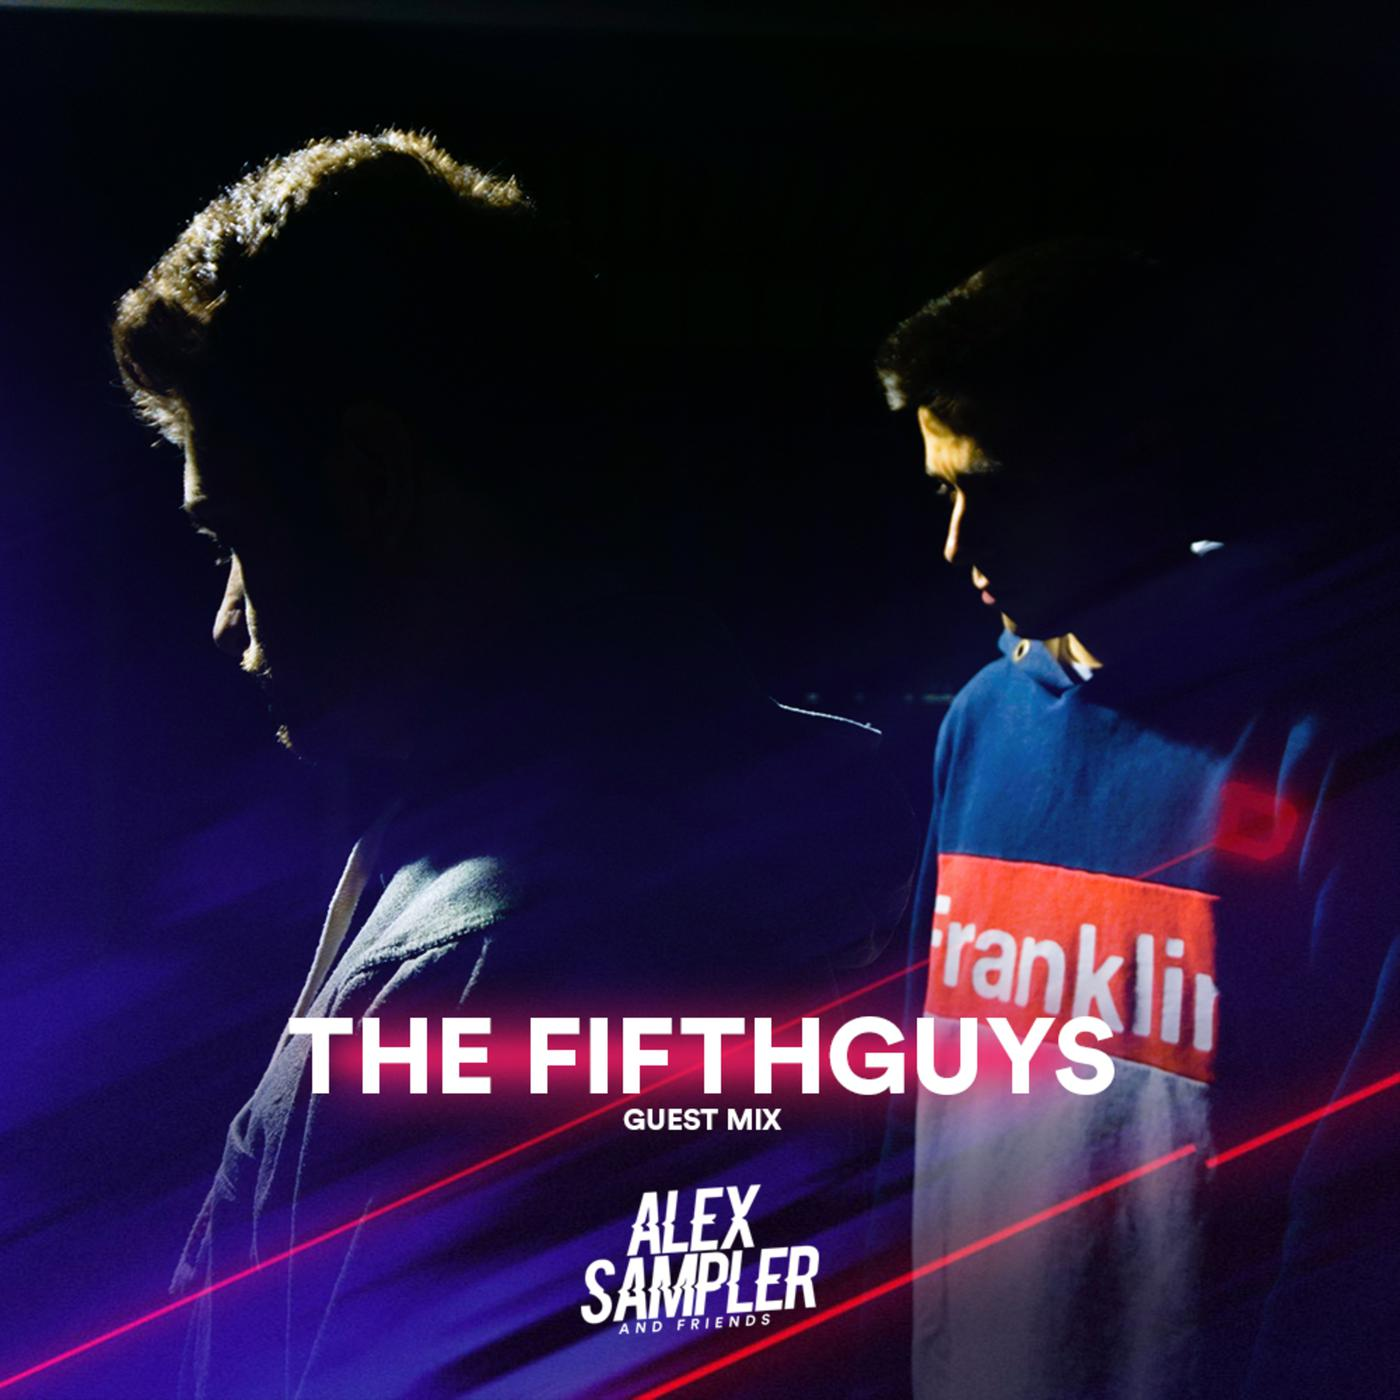 Guest Mix: The FifthGuys